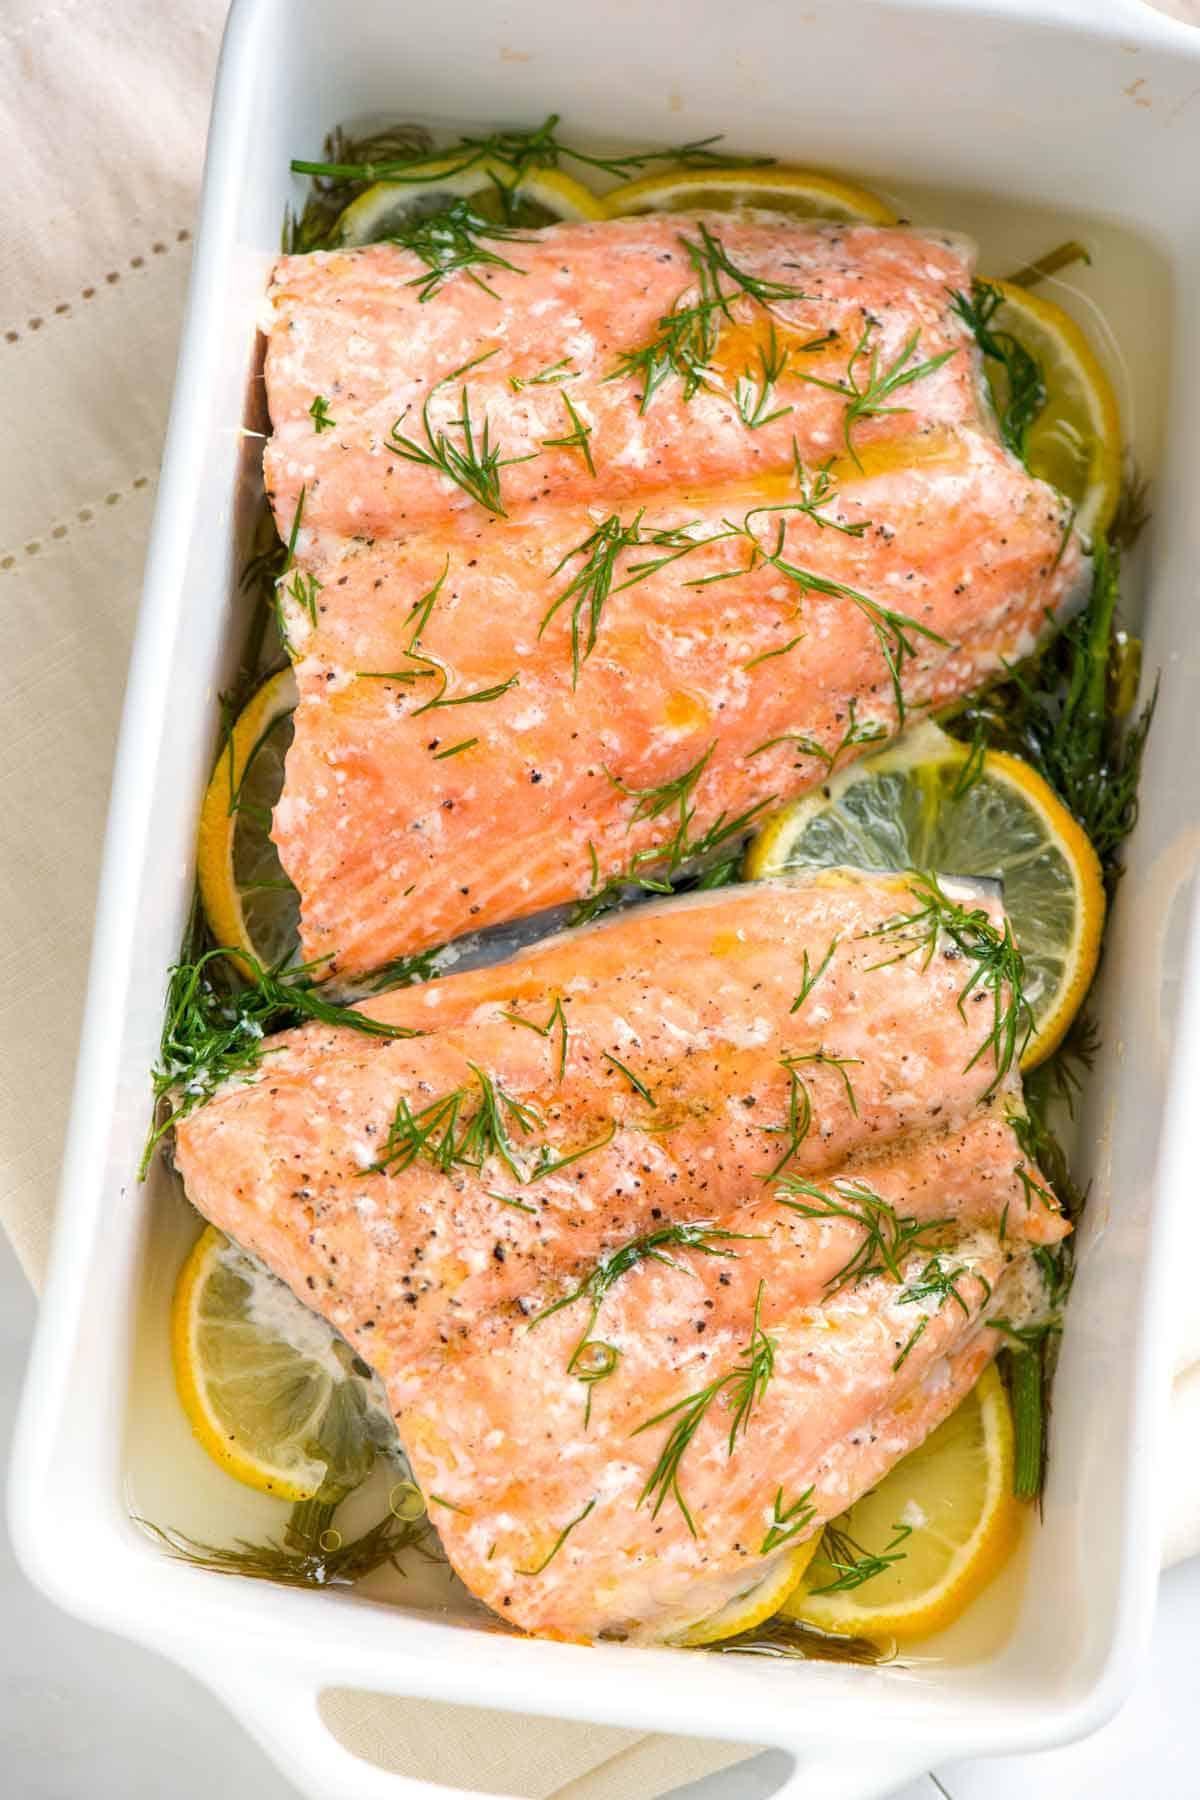 How Long to Bake Salmon in the Oven? - The Housing Forum